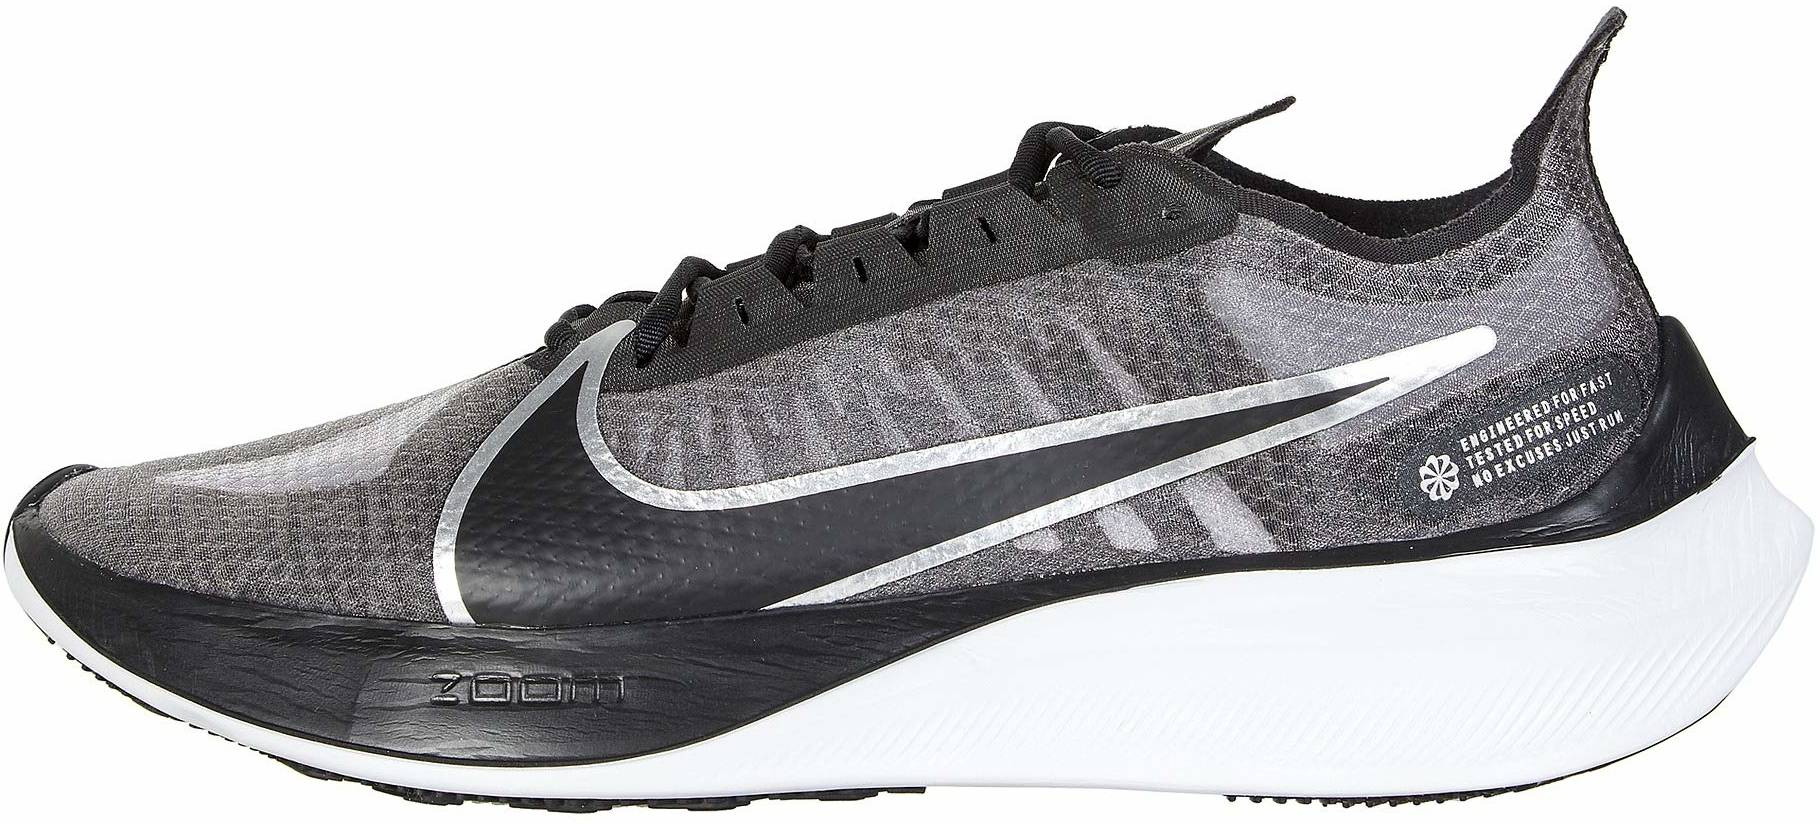 Nike Zoom Gravity - Deals ($68), Facts, Reviews (2021) | RunRepeat